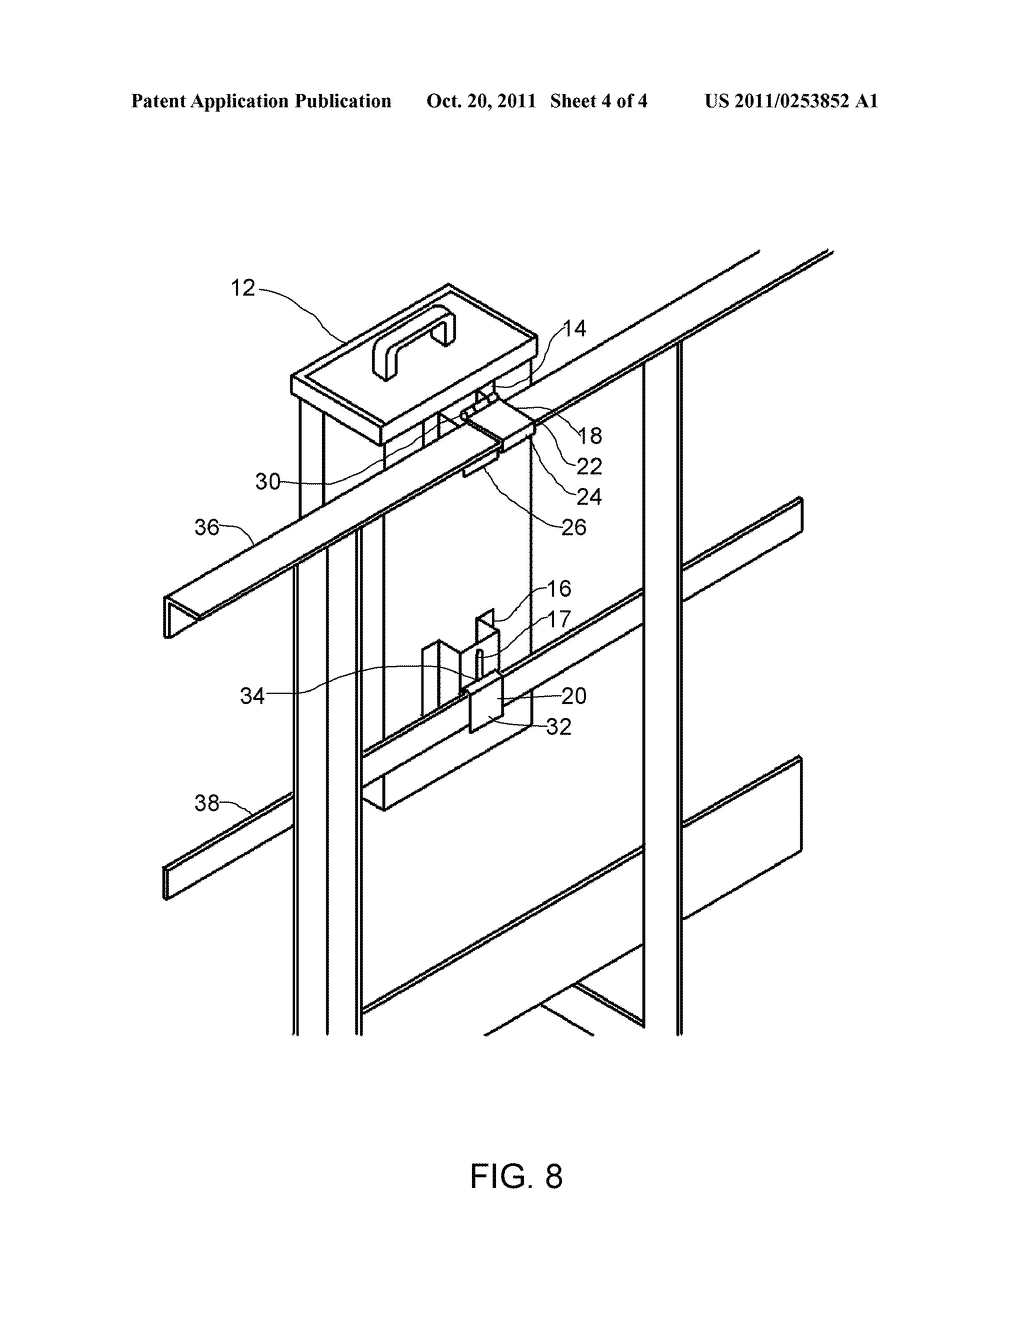 Hand Rail Mounting Bracket For An Electrical Panel Diagram Electric Schematic And Image 05